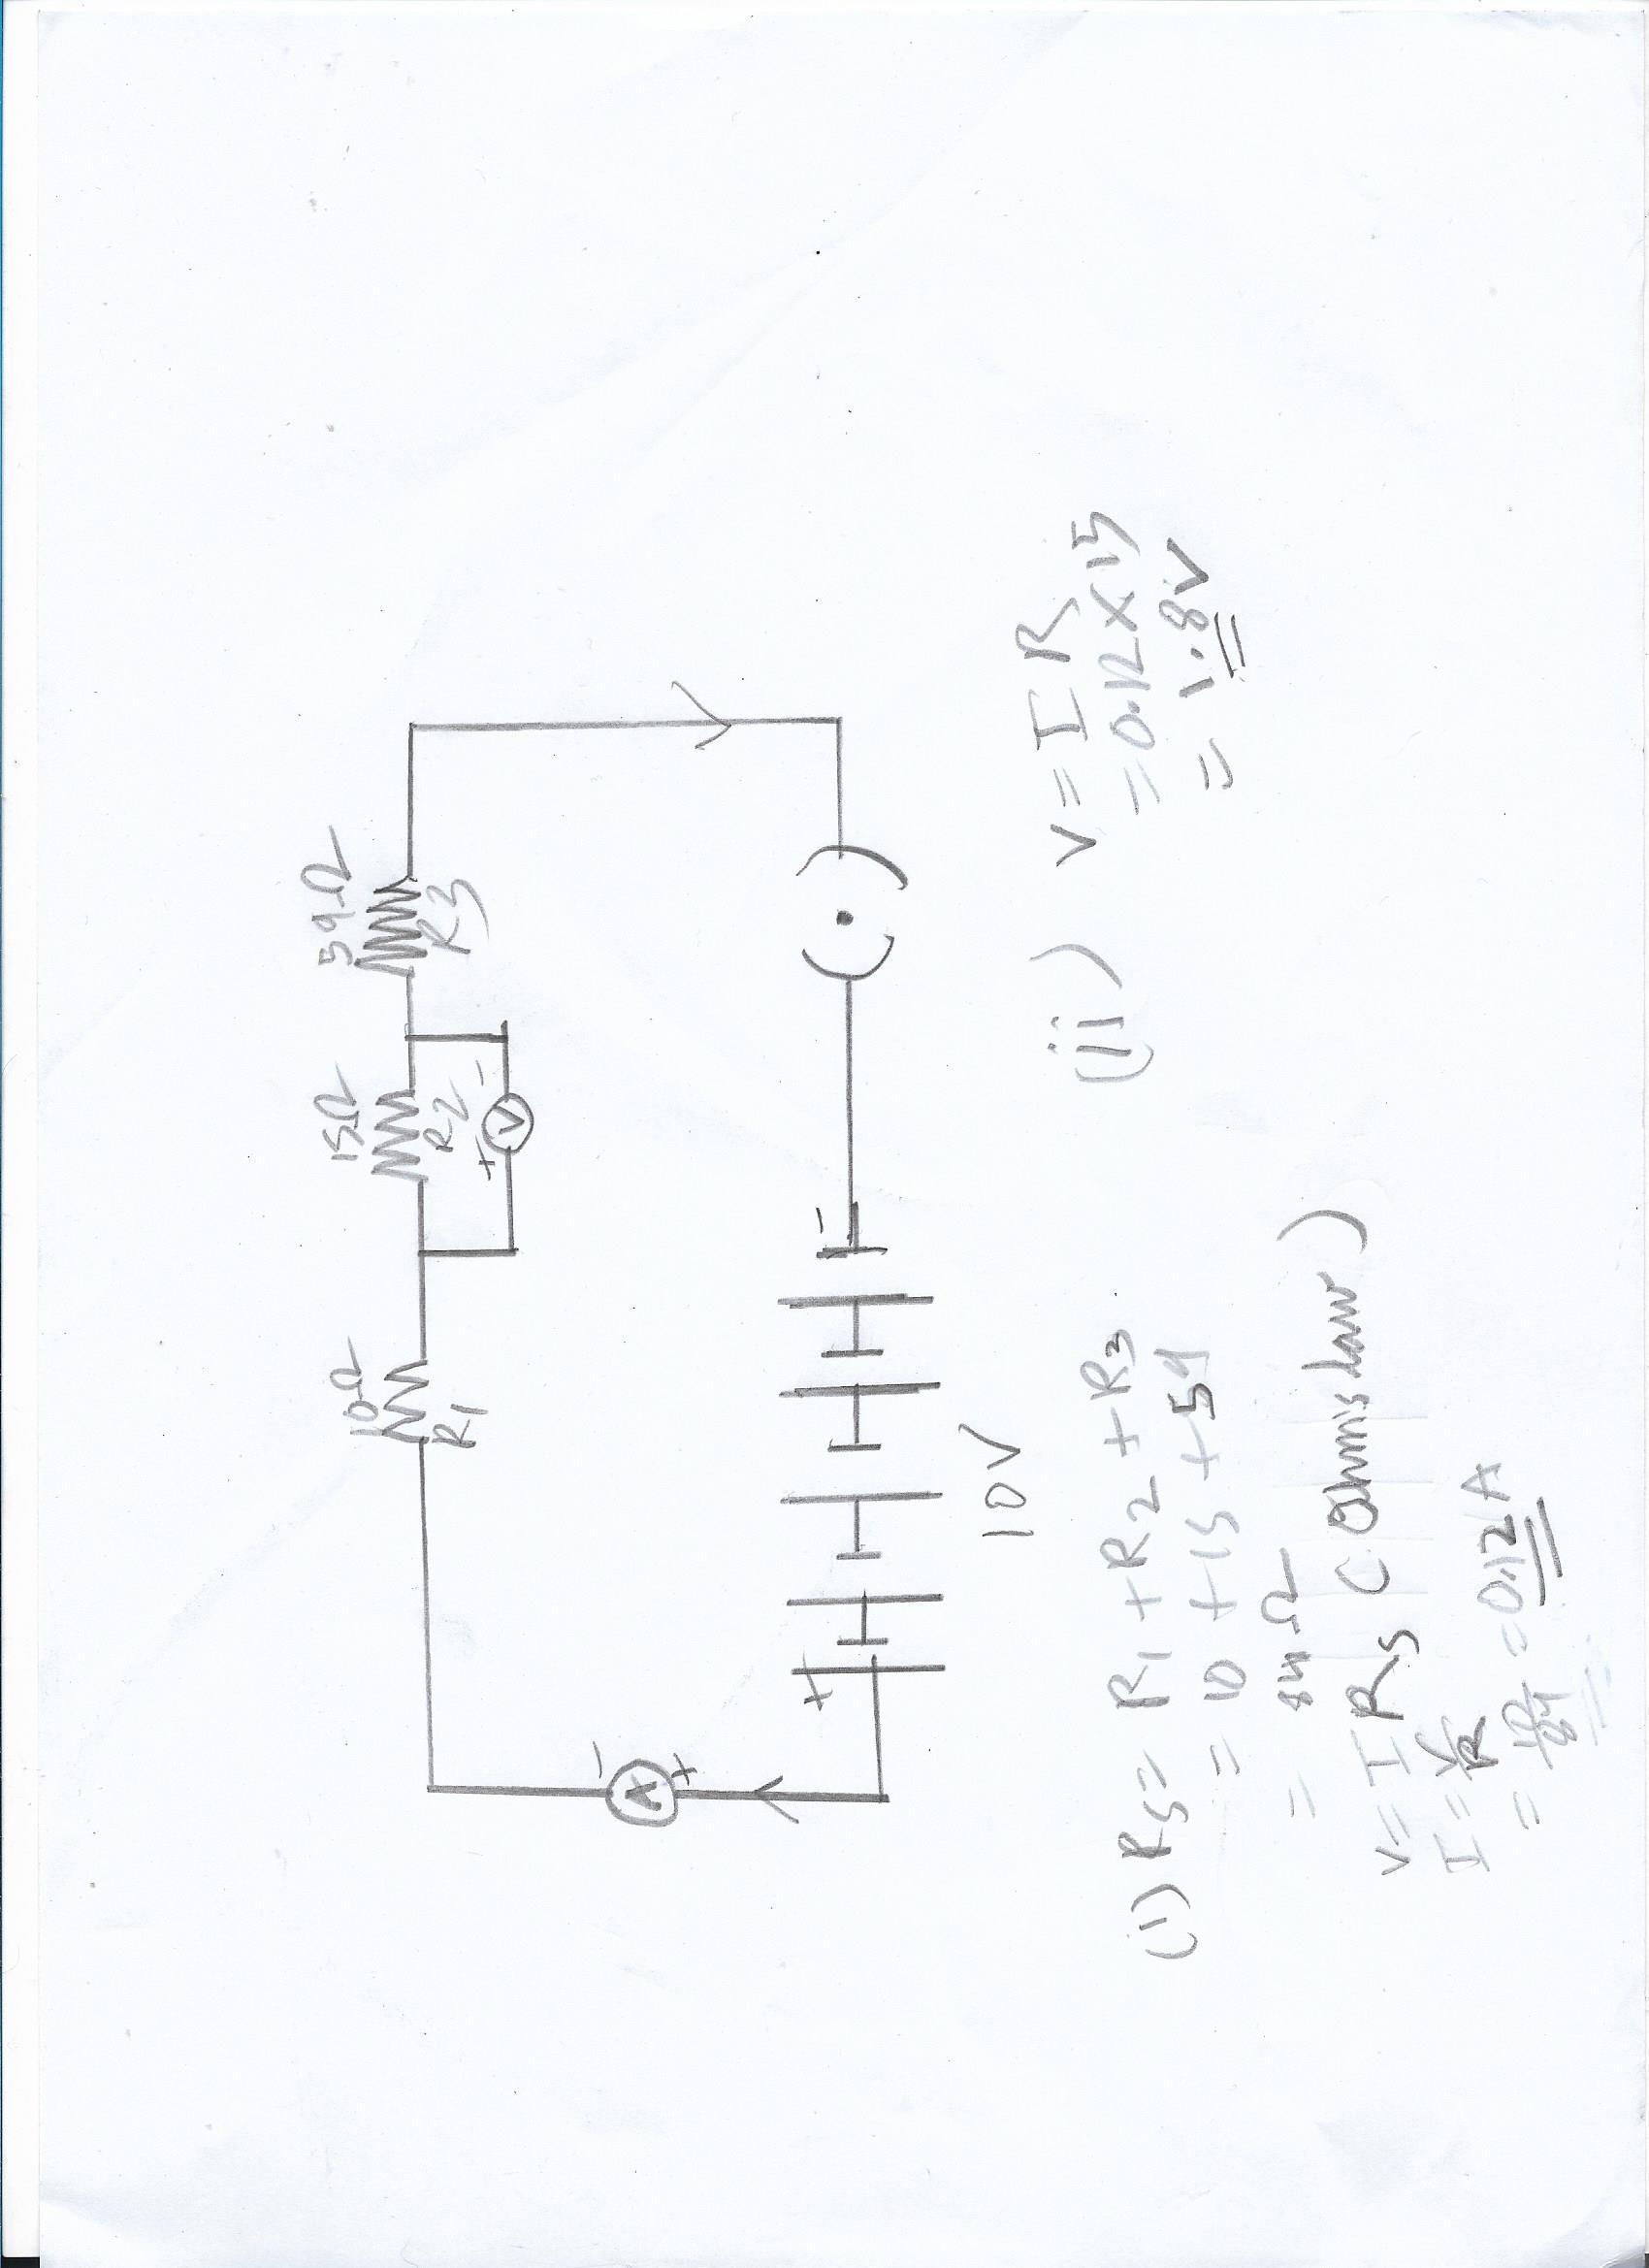 15 draw a circuit diagram for a circuit consisting of a battery of five cells of 2 volts each  a